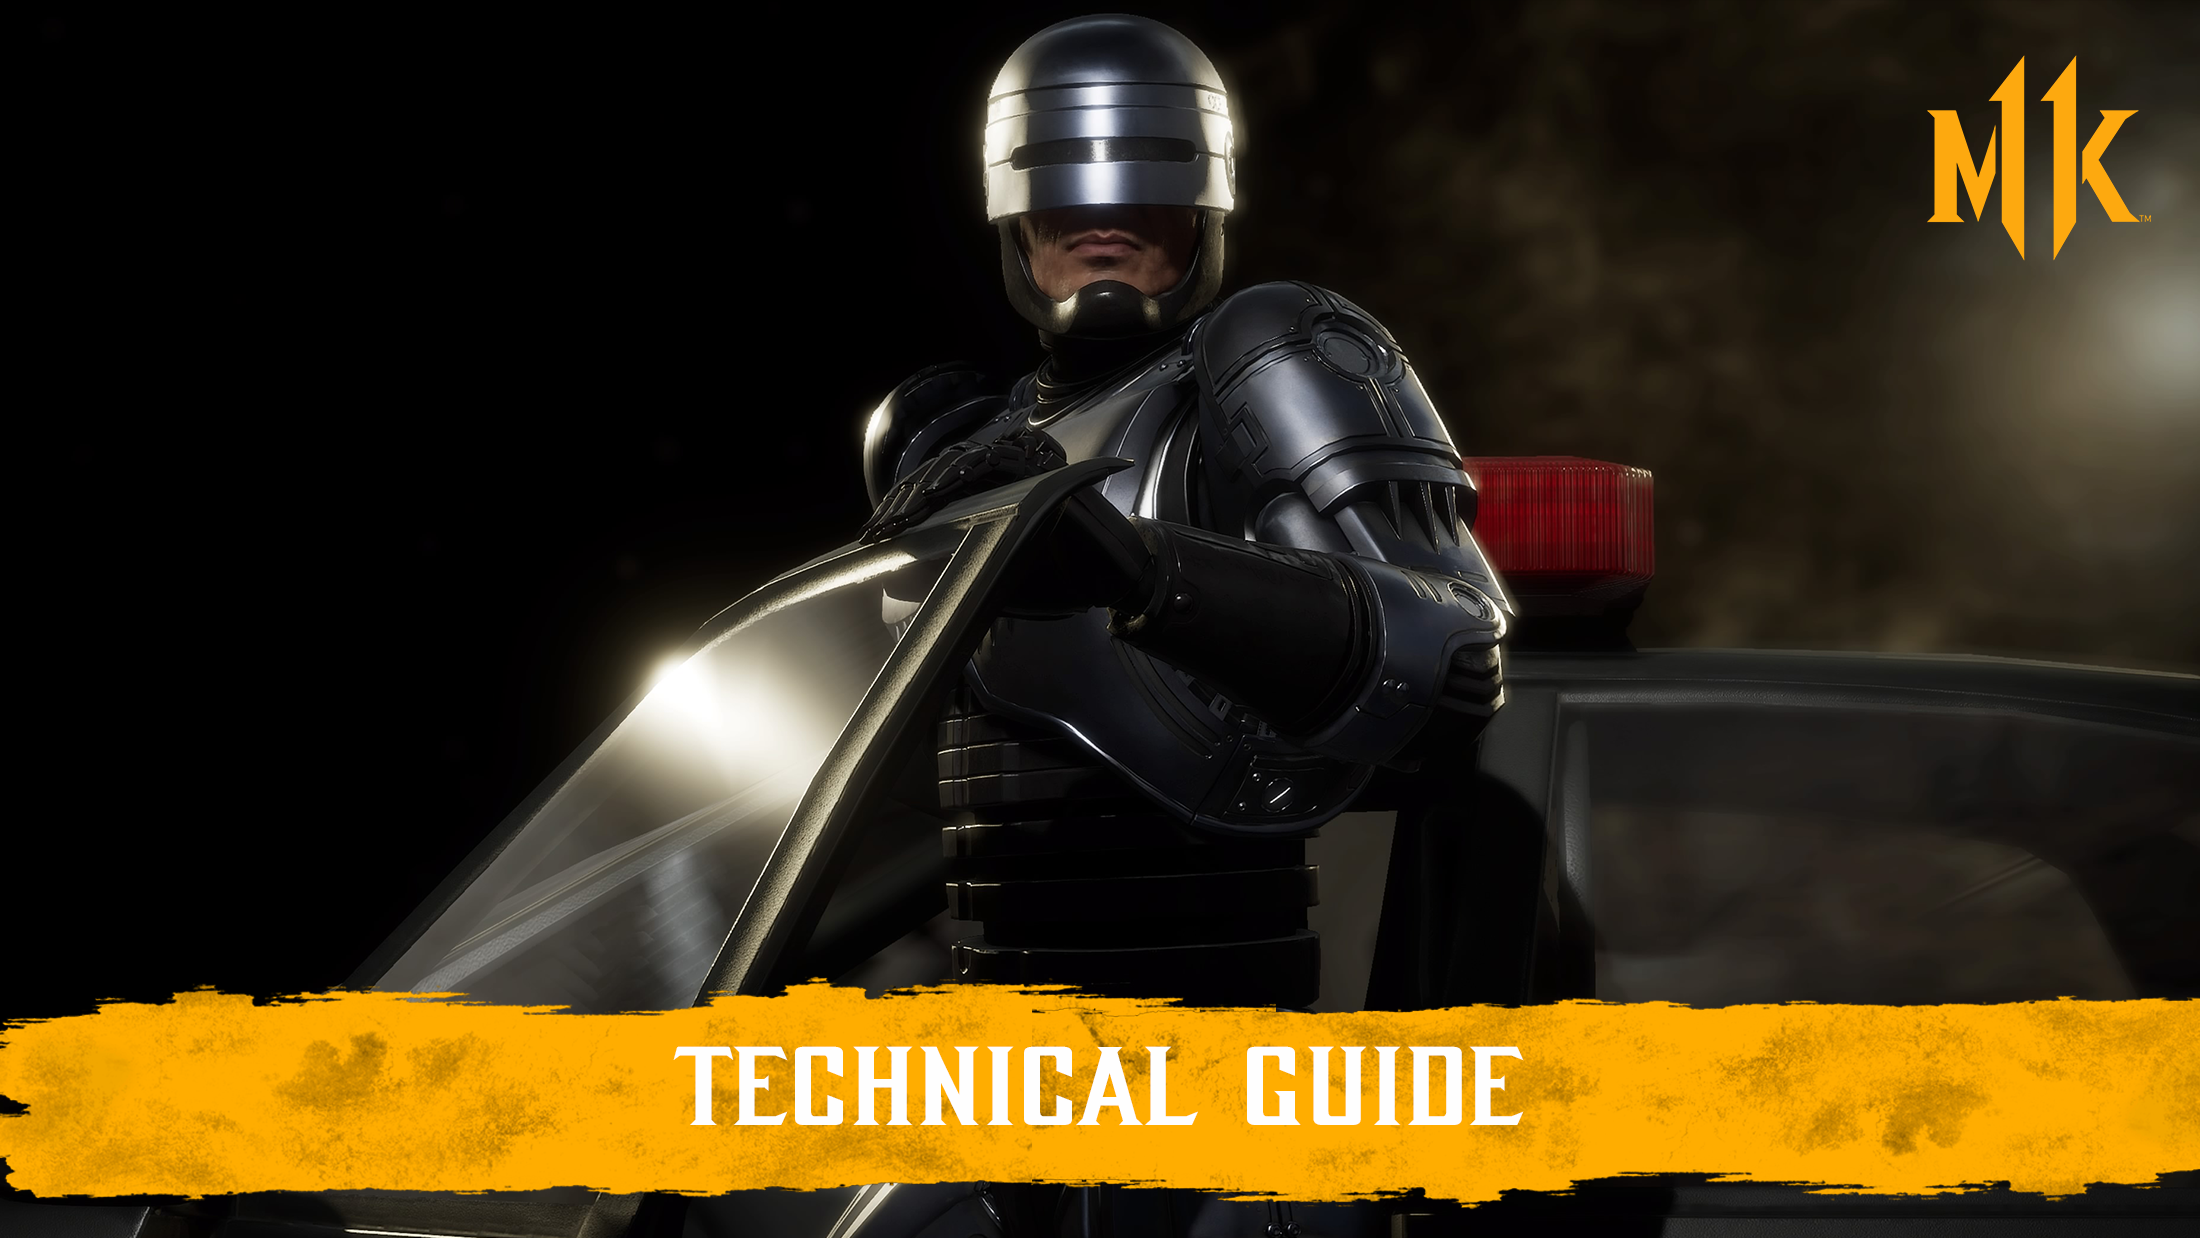 TECHNICAL_GUIDE4.png